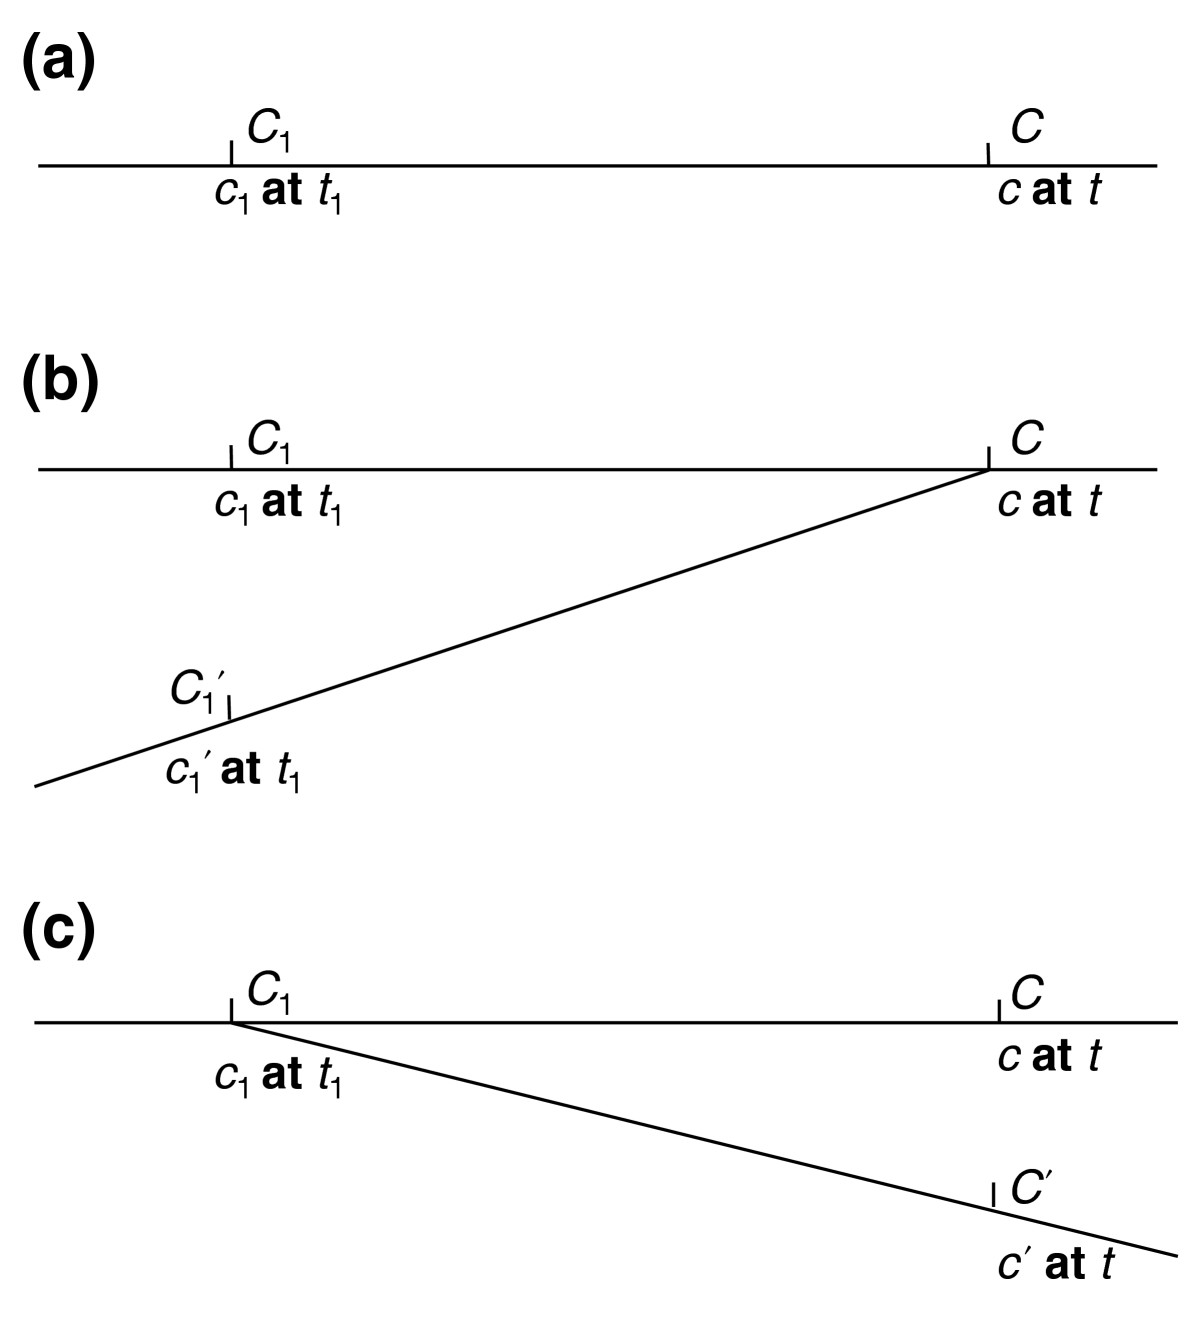 https://static-content.springer.com/image/art%3A10.1186%2Fgb-2005-6-5-r46/MediaObjects/13059_2004_Article_1081_Fig3_HTML.jpg